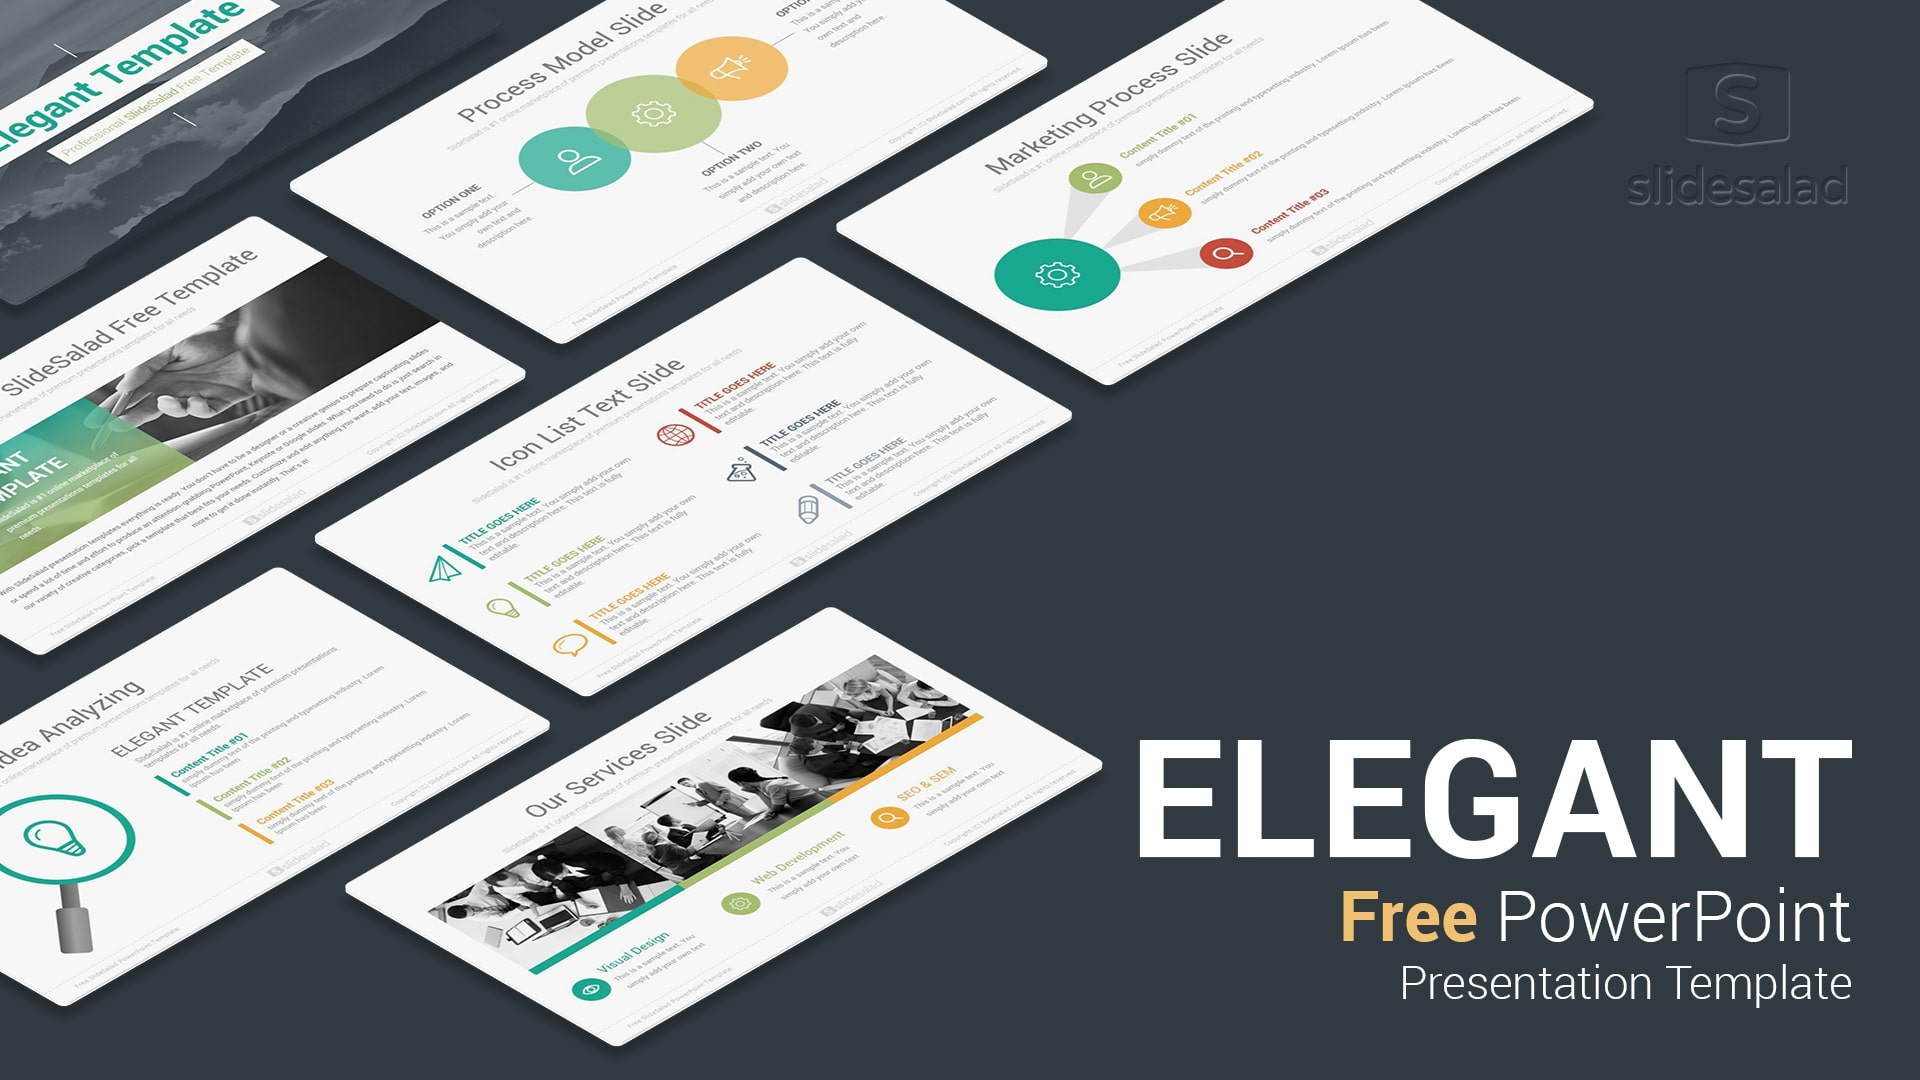 Best Free Presentation Templates Professional Designs 2019